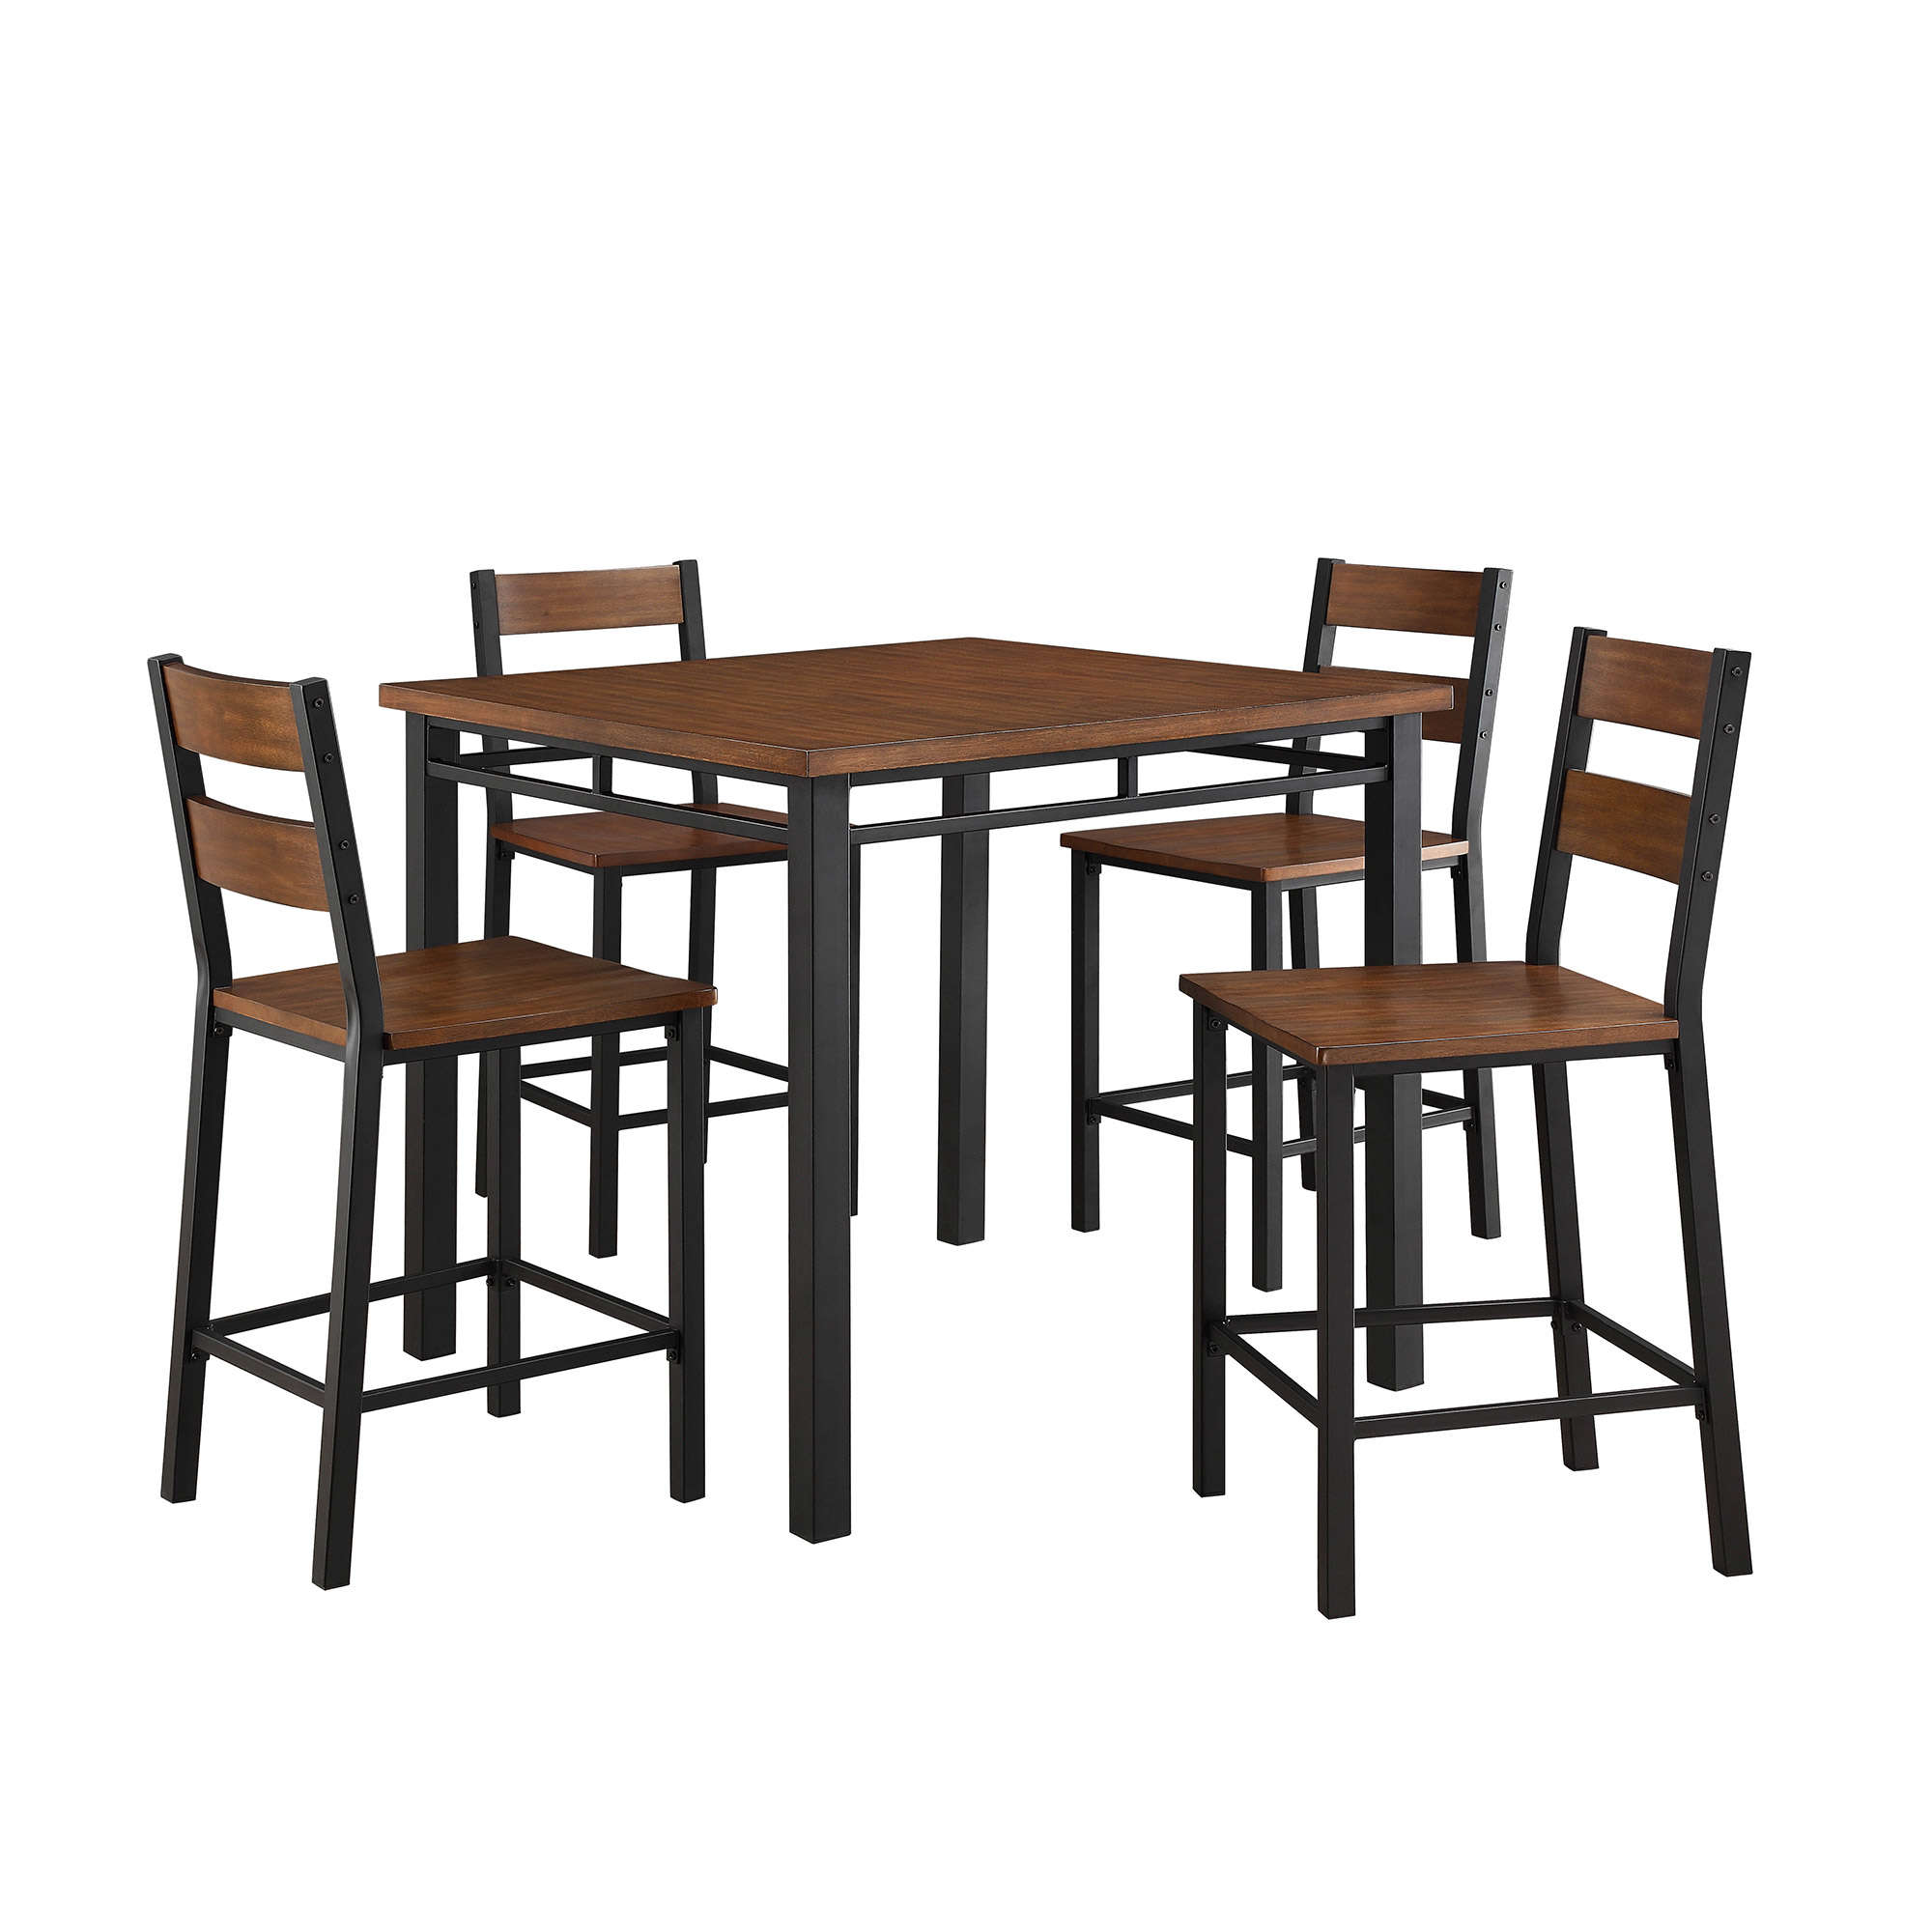 Better Homes U0026 Gardens Mercer 5 Piece Counter Height Dining Set, Includes  Table And